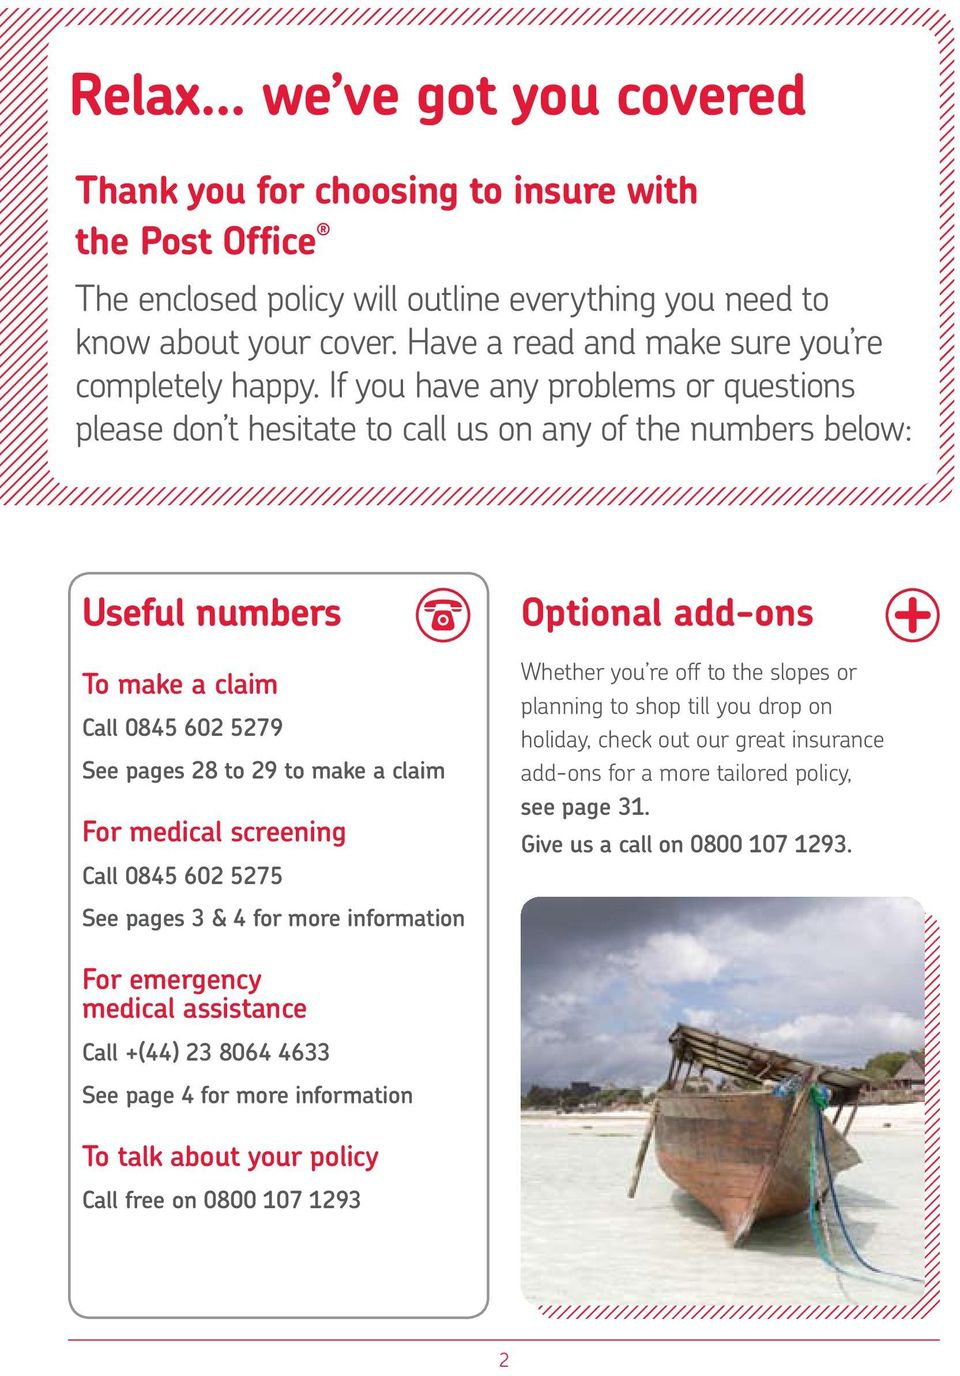 If you have any problems or questions please don t hesitate to call us on any of the numbers below: Useful numbers To make a claim Call 0845 602 5279 See pages 28 to 29 to make a claim For medical